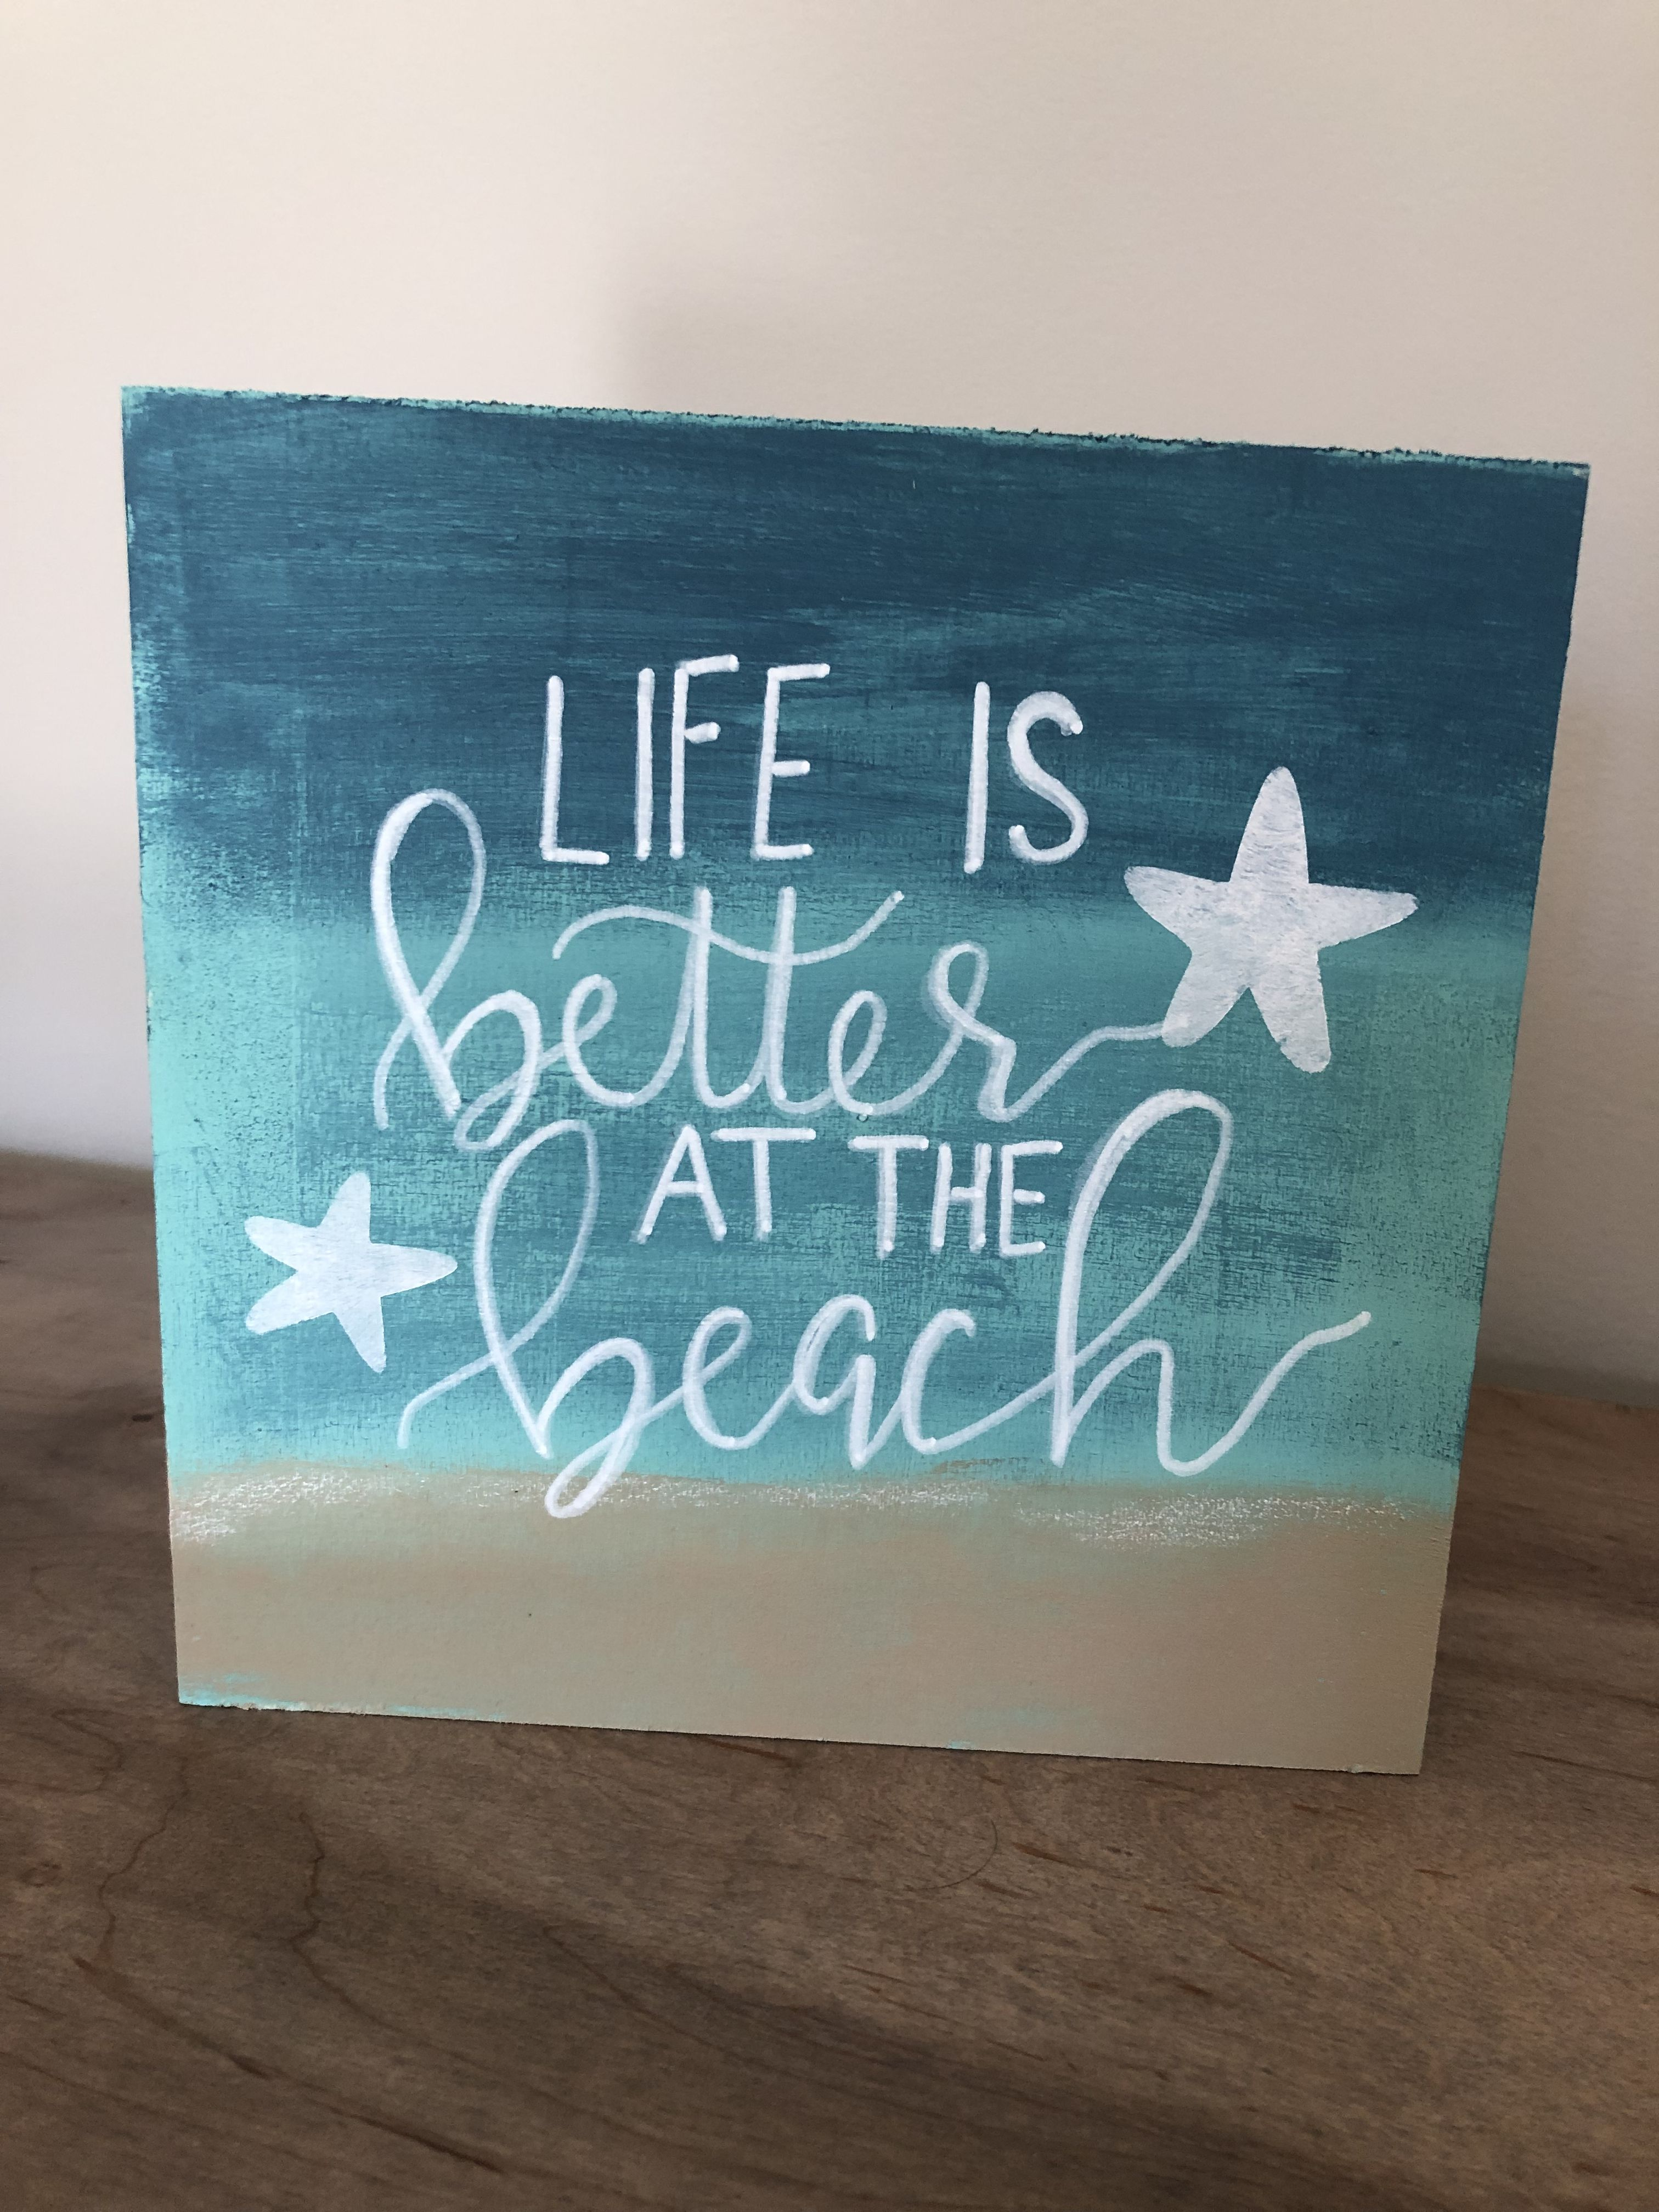 Life Is Better At The Beach Wood Block Standing Sign Hand Painted Handwritten Home Decor Beach Coastal Beach Signs Beach Signs Decor Beach Wood Signs